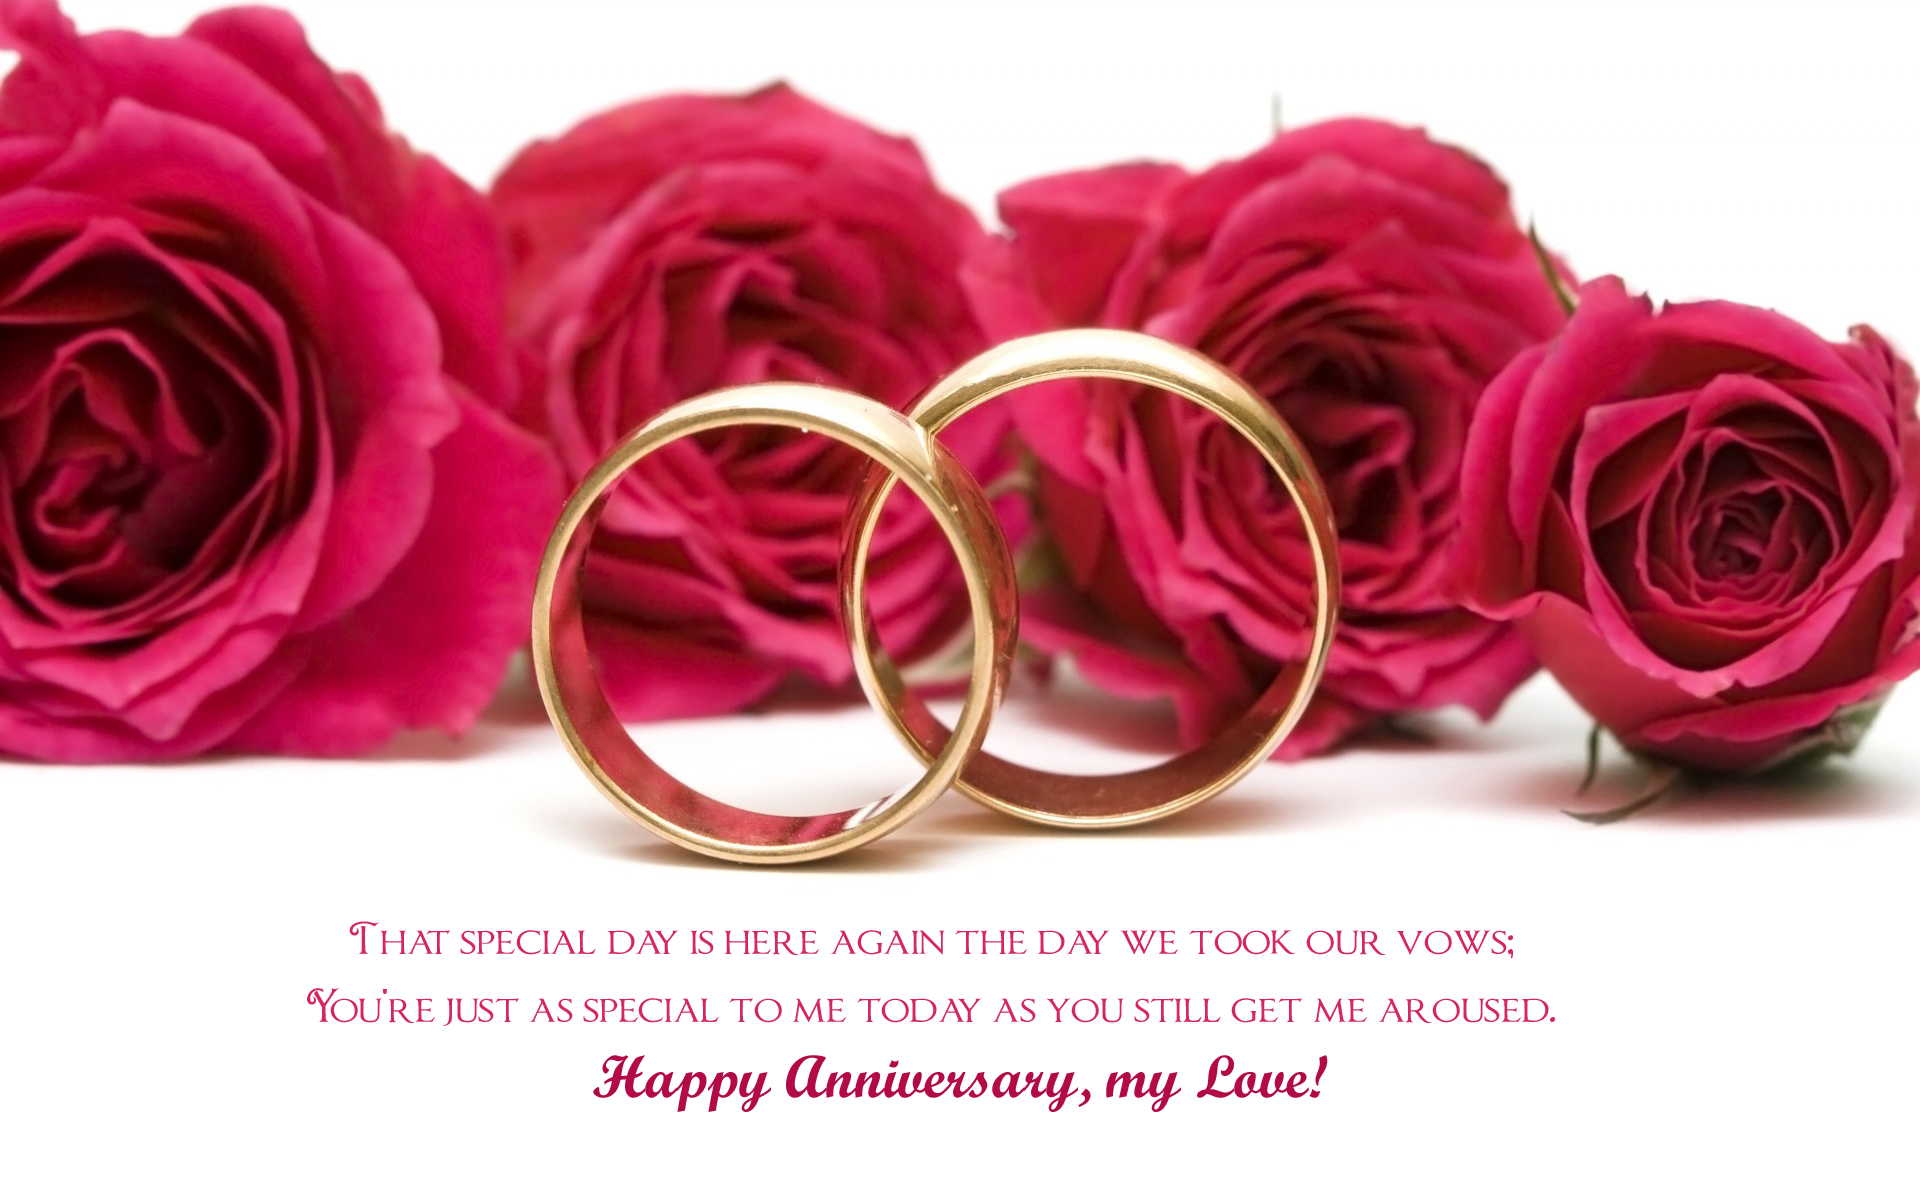 Anniversary Images Wallpapers Free Happy Anniversary My Sweet Wife 954544 Hd Wallpaper Backgrounds Download